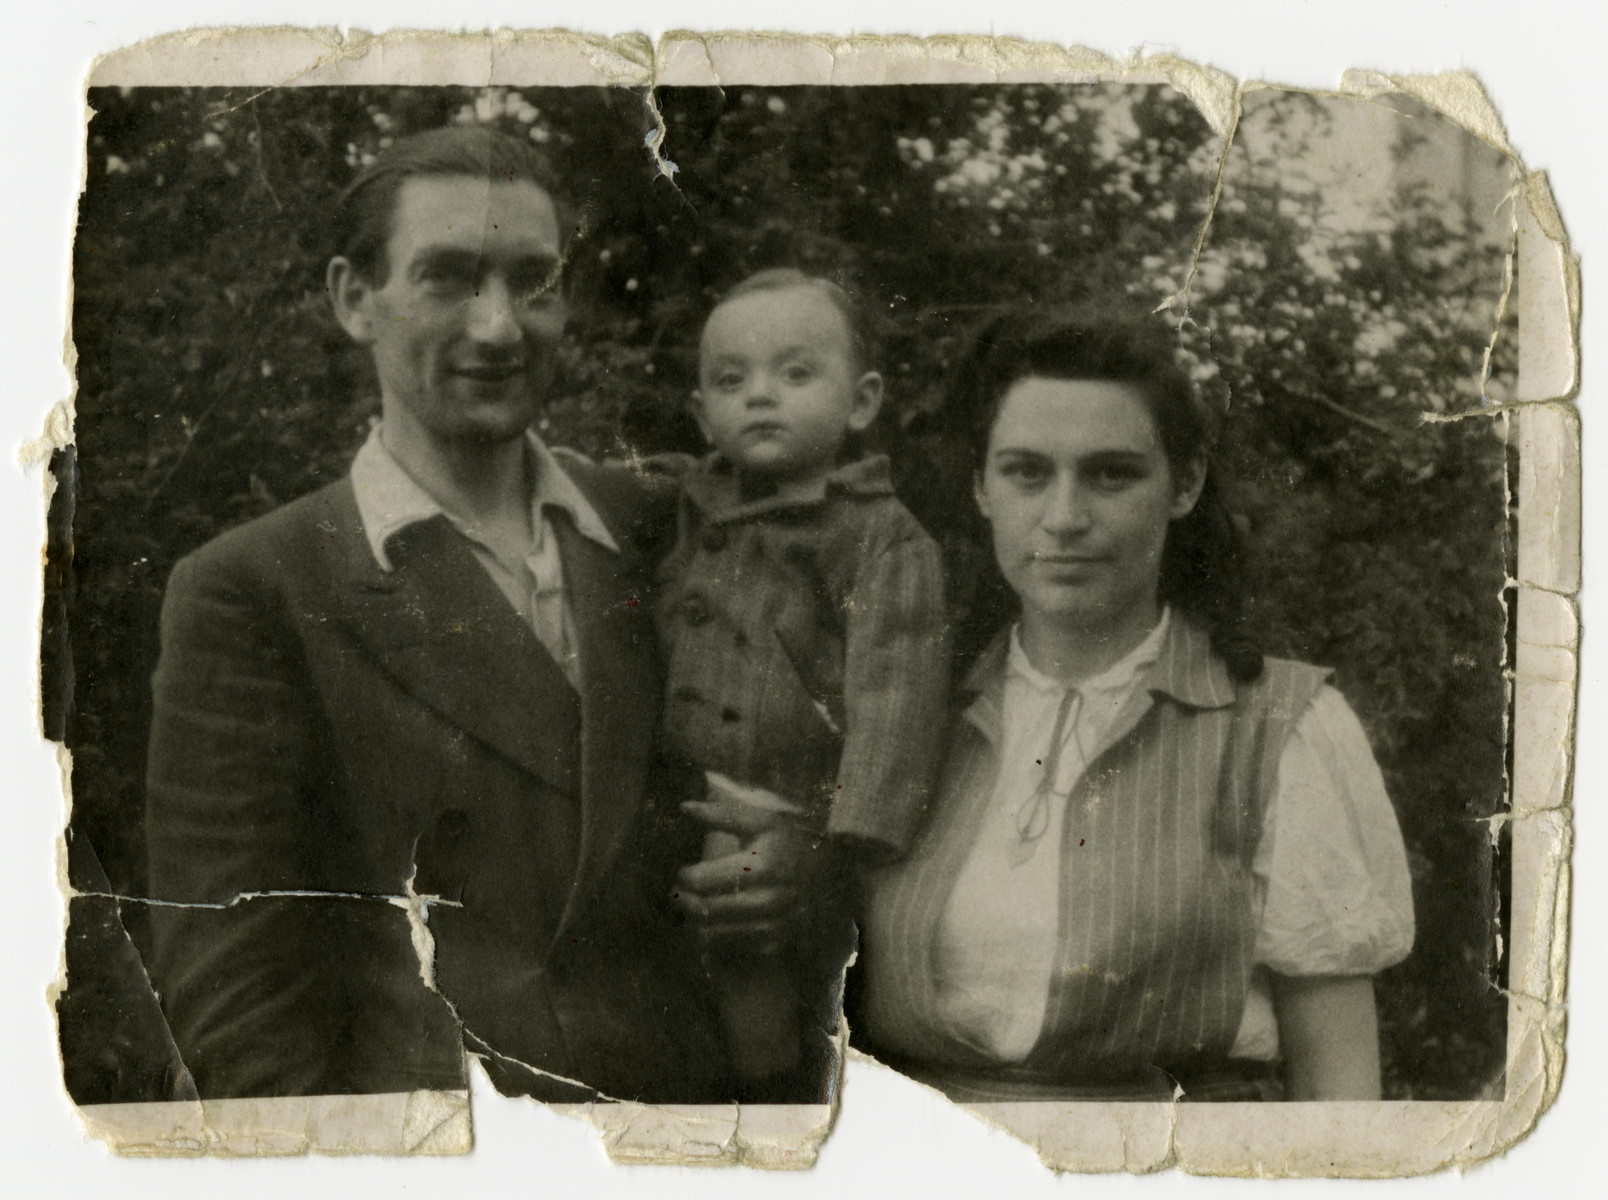 Close-up portrait of the Raysman family after returning from the Soviet Union.  From left to right are Motel, Marusia and Hershel Raysman.